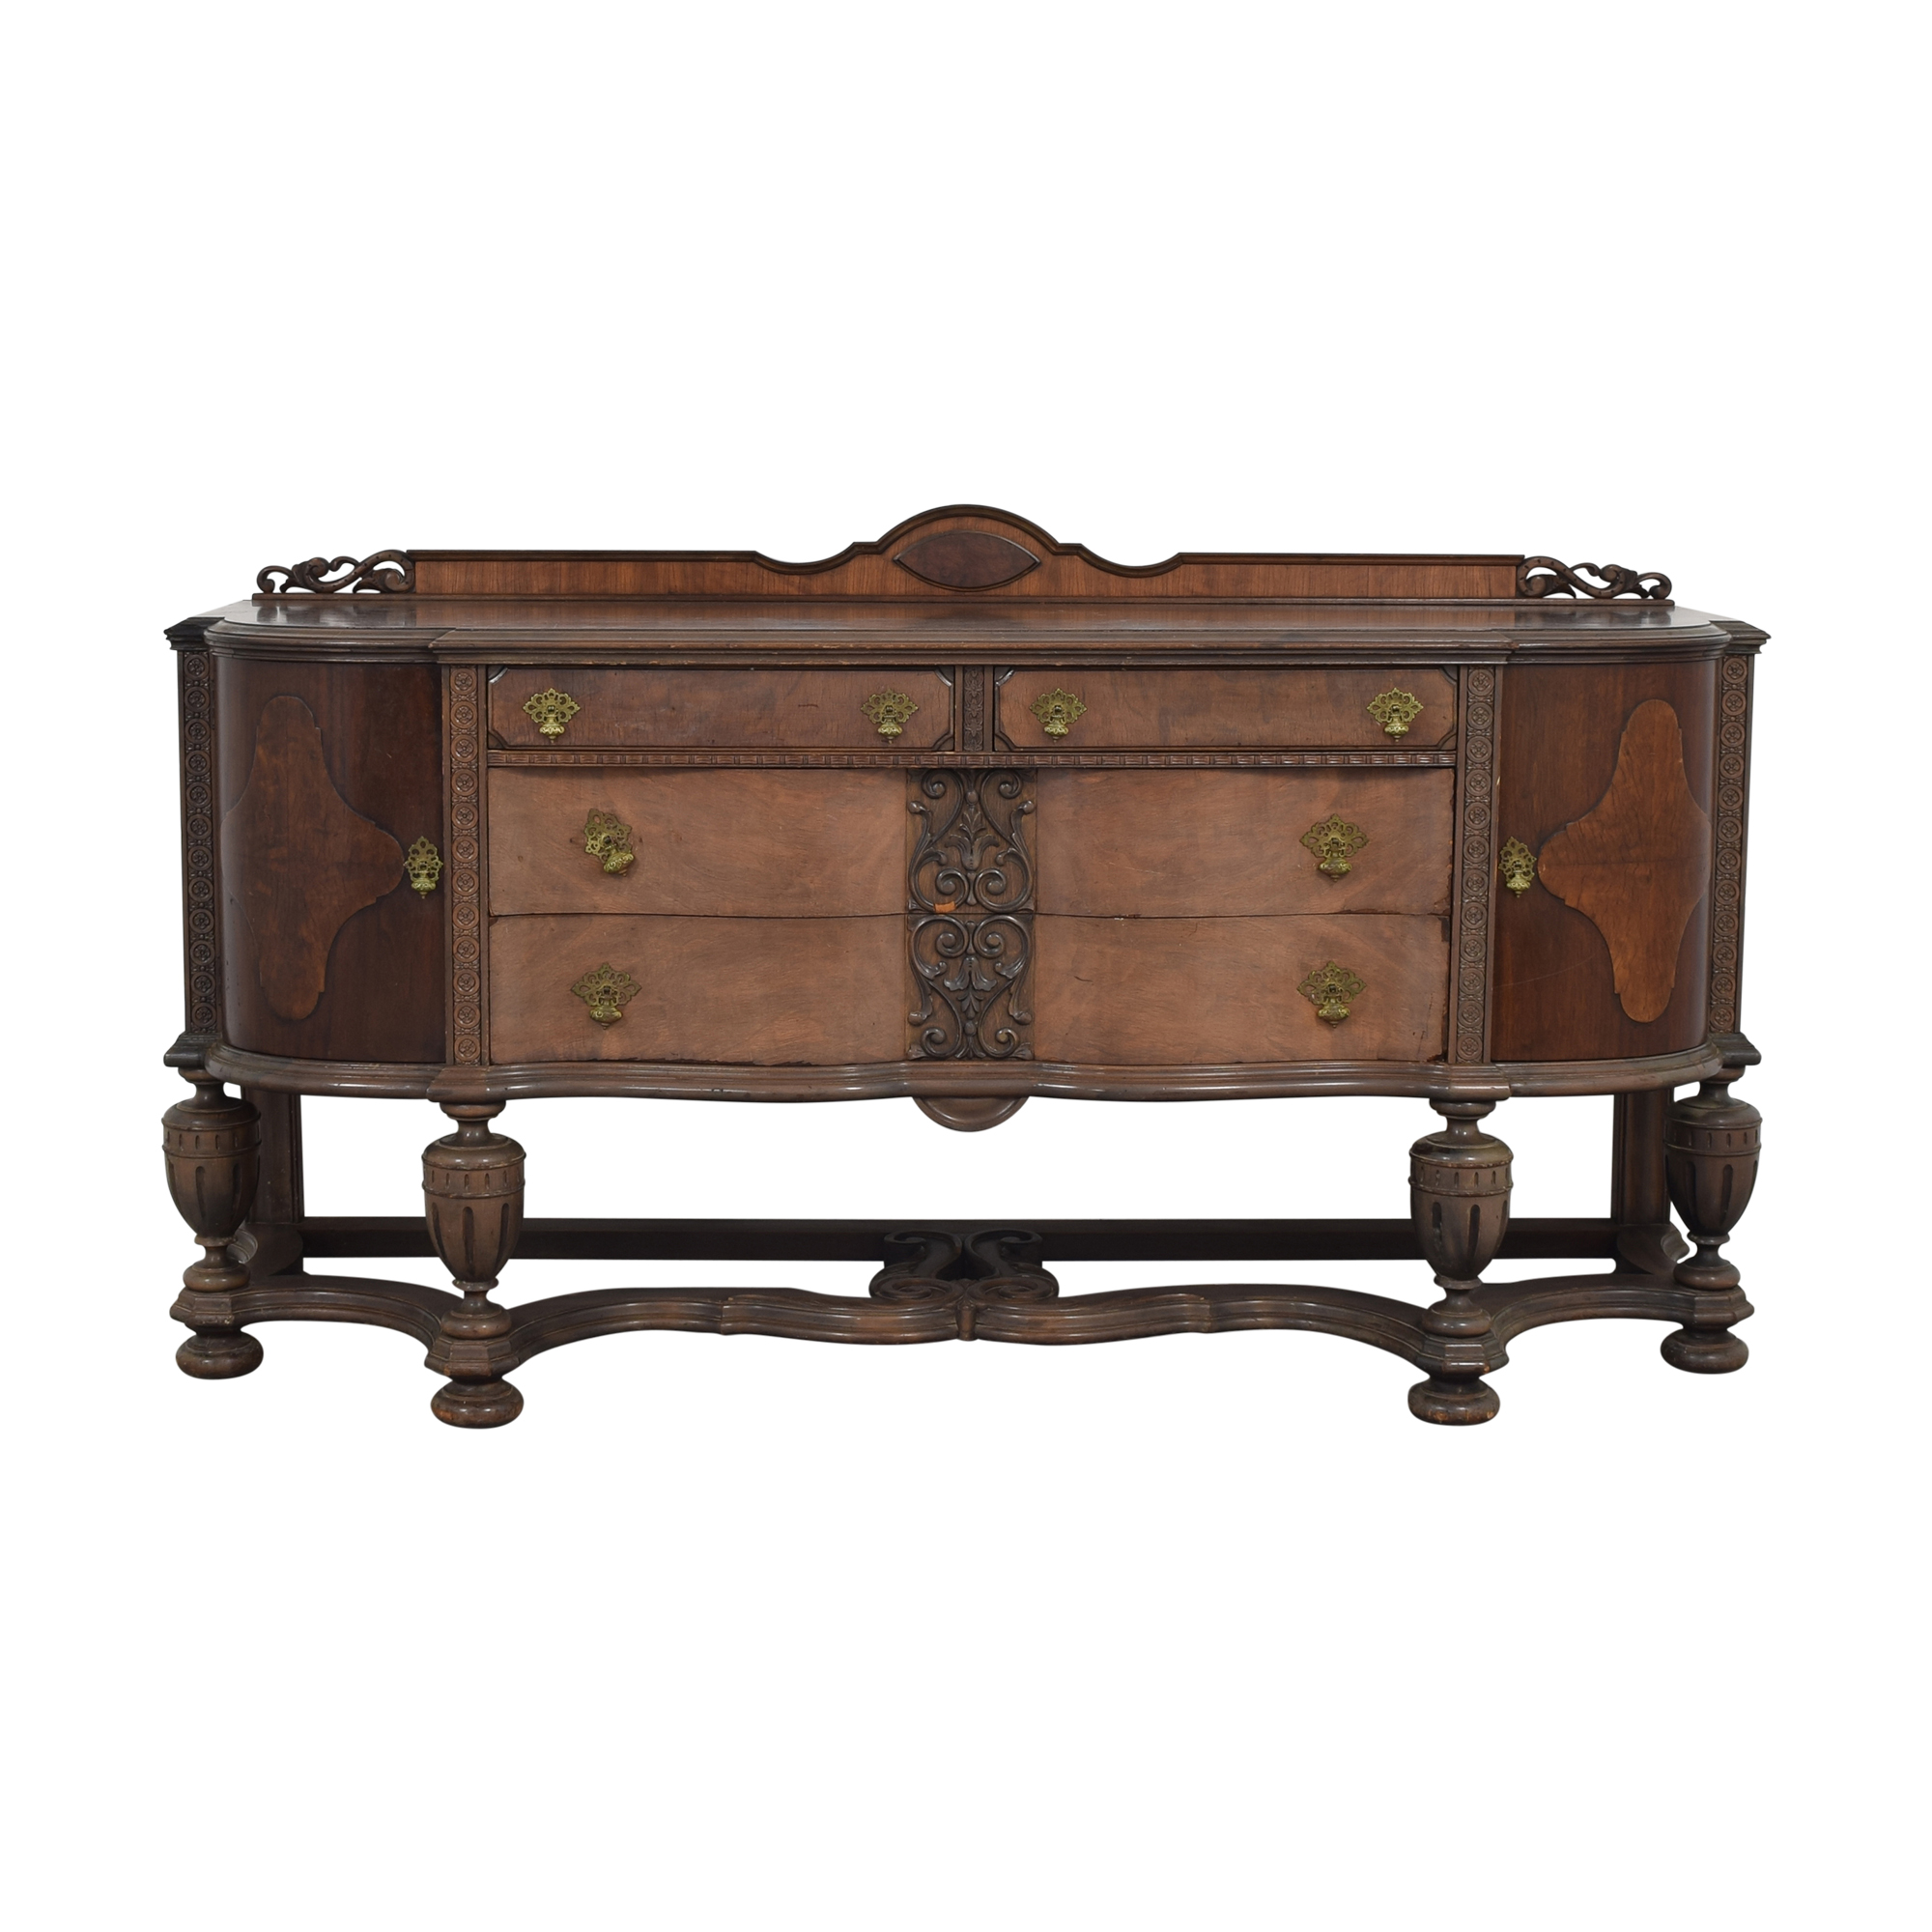 Vintage Jacobean Style Sideboard for sale